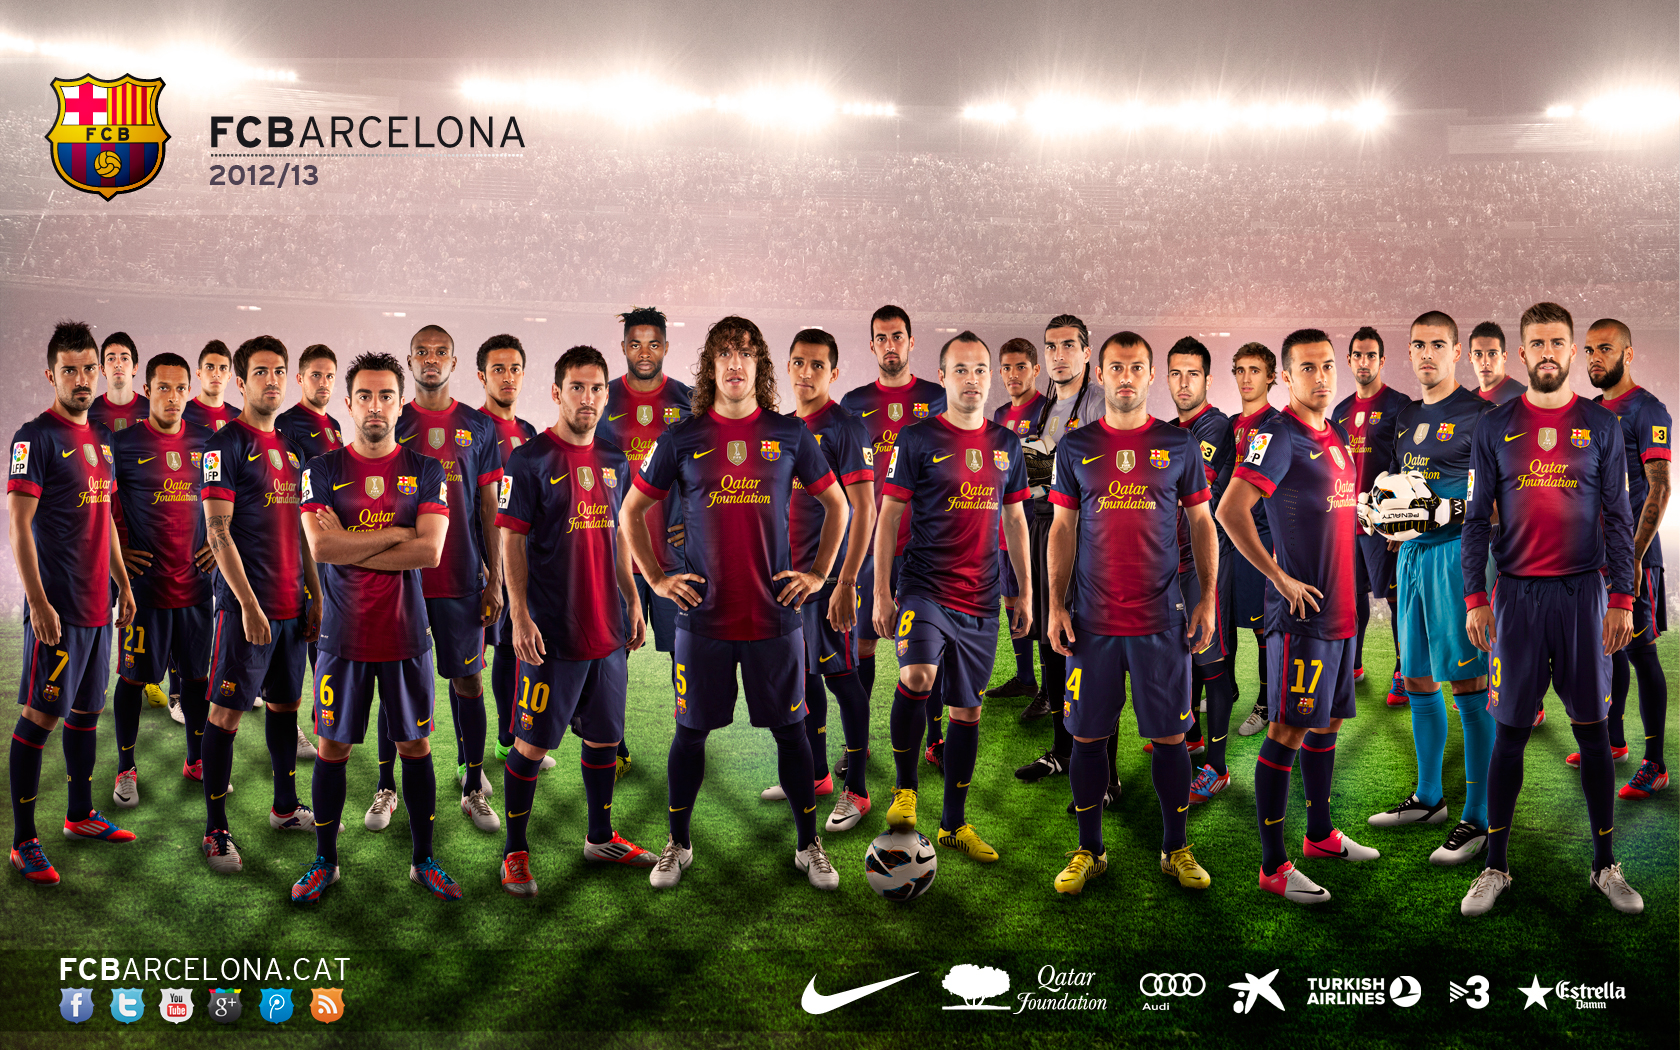 Description: First Team Barcelona 2013 Wallpaper is Wallapers for pc